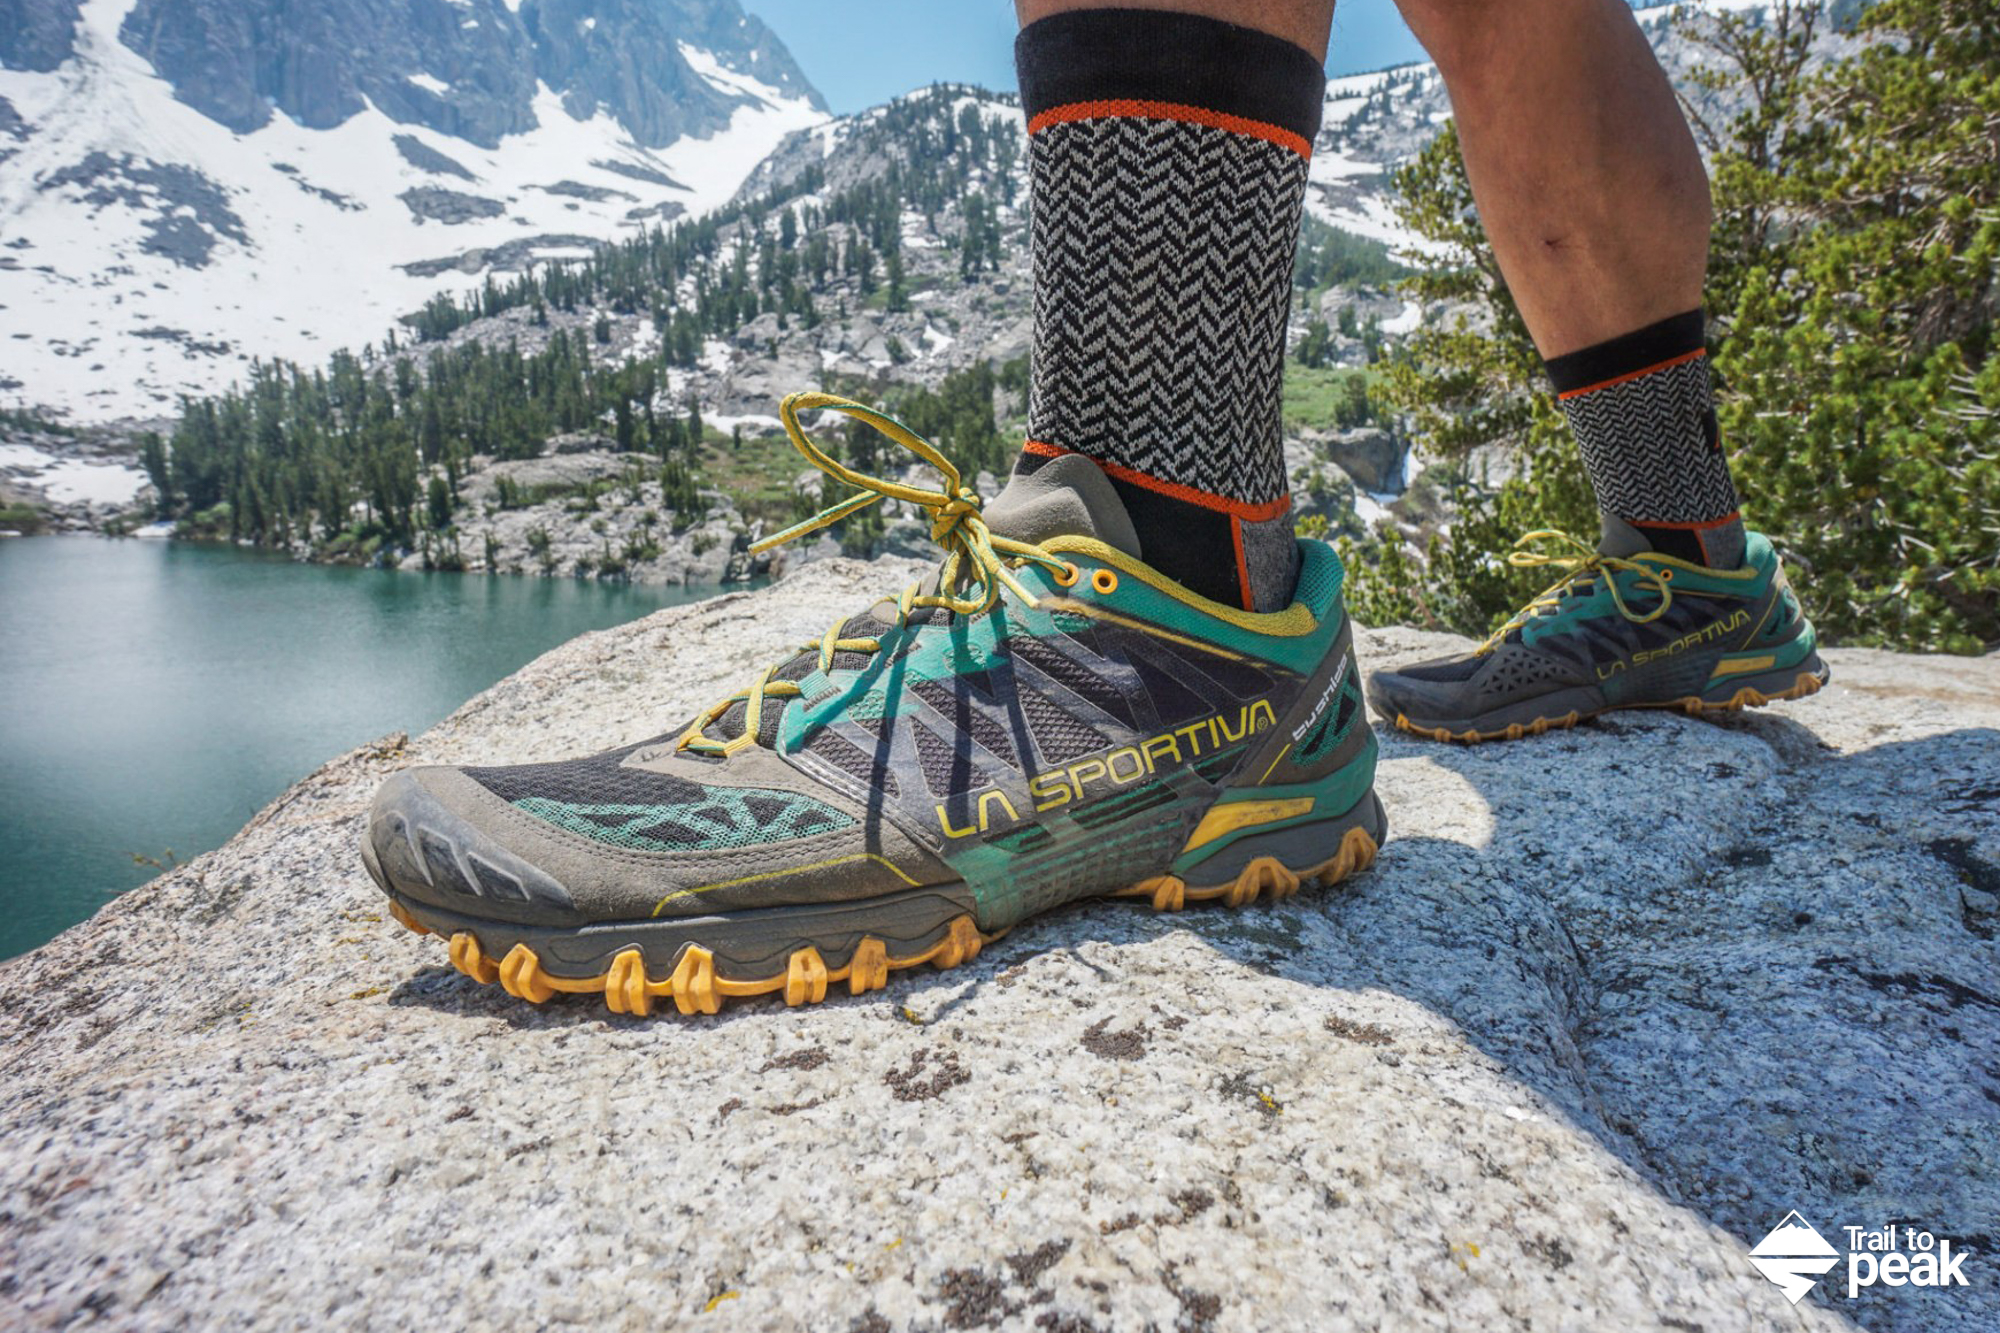 John Muir Trail And Pacific Crest Trail